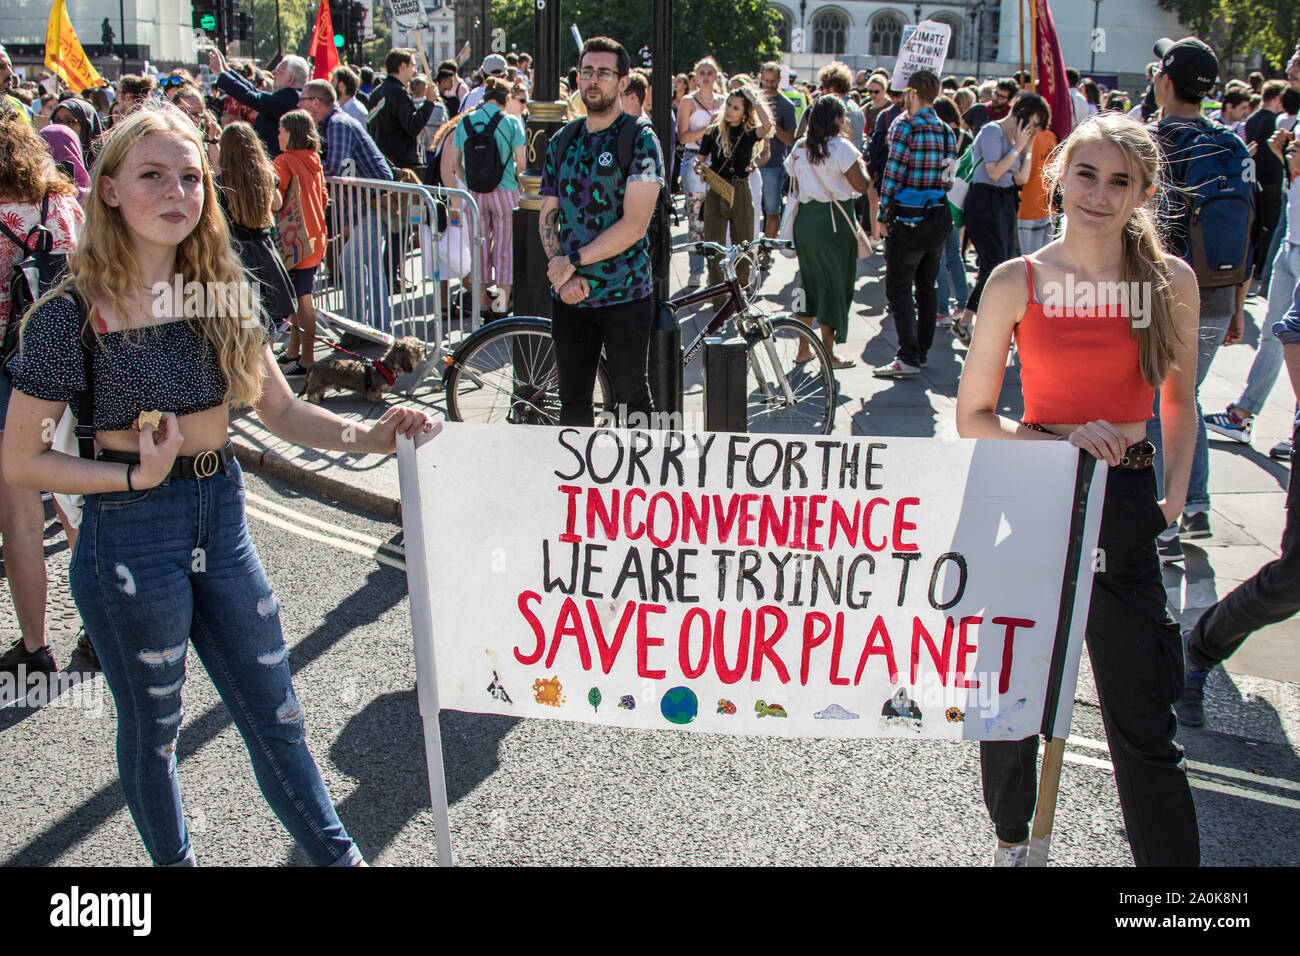 London, UK. 20th Sep, 2019. Thousands rallied in central London, including school children and workers, as part of a Global climate strike.David Rowe/Alamy Live News. Stock Photo